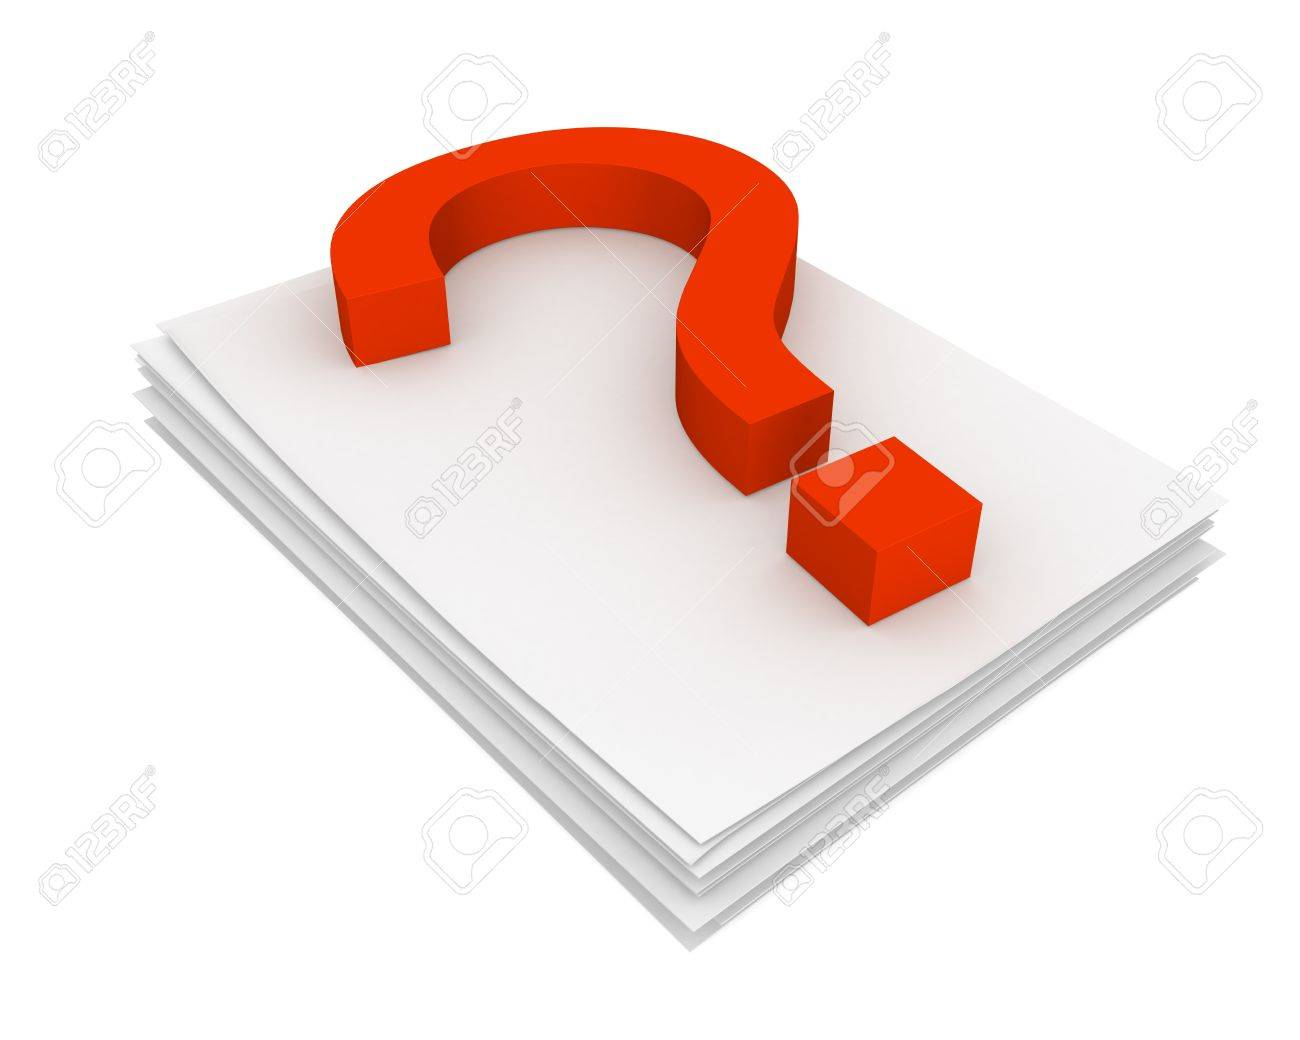 Three-dimensional model - question mark pressed on the pack of paper. - 7674979